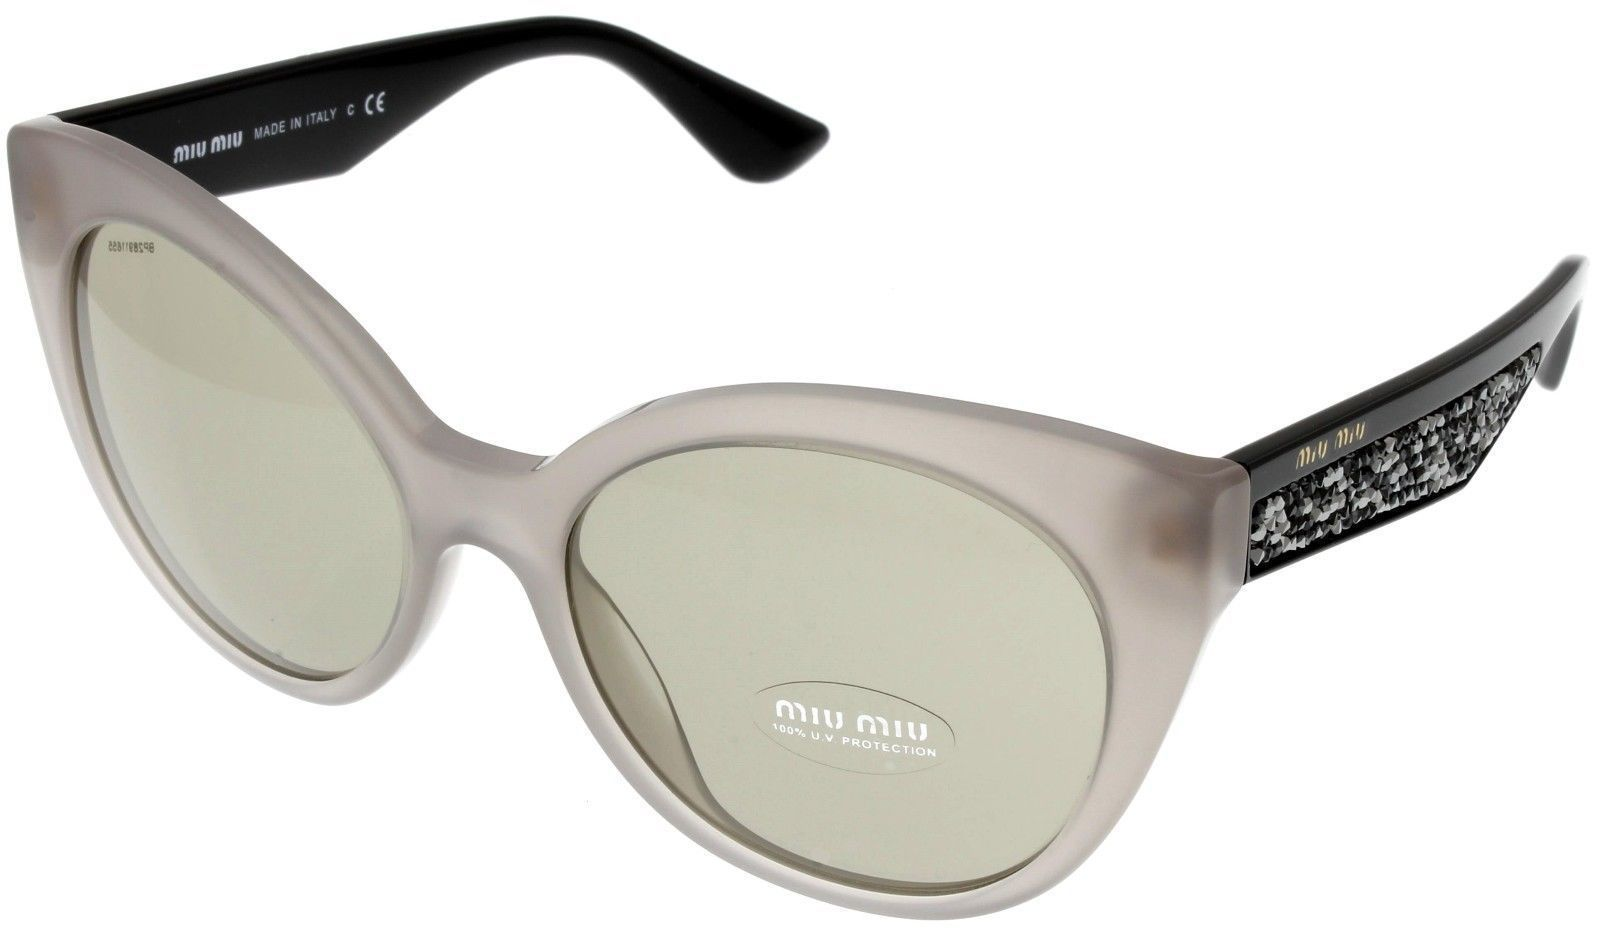 e04db8882d6f 57. 57. Previous. Miu Miu Sunglasses Women Brown Black Taupe Cat Eye MU07RS  UE25J2. Miu Miu Sunglasses ...